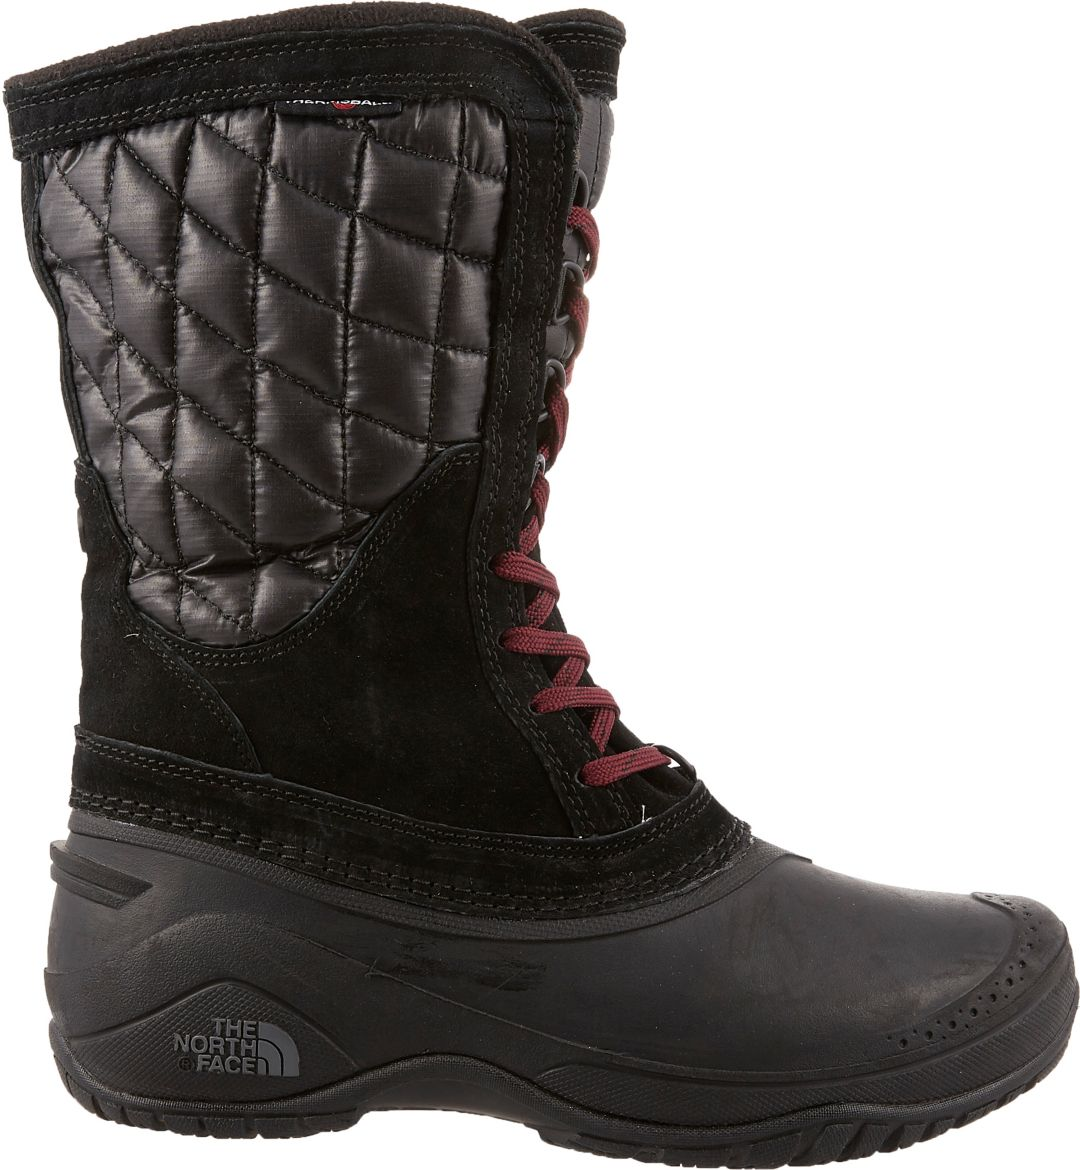 fb15986c4 The North Face Women's Thermoball Utility Mid Insulated Waterproof Winter  Boots